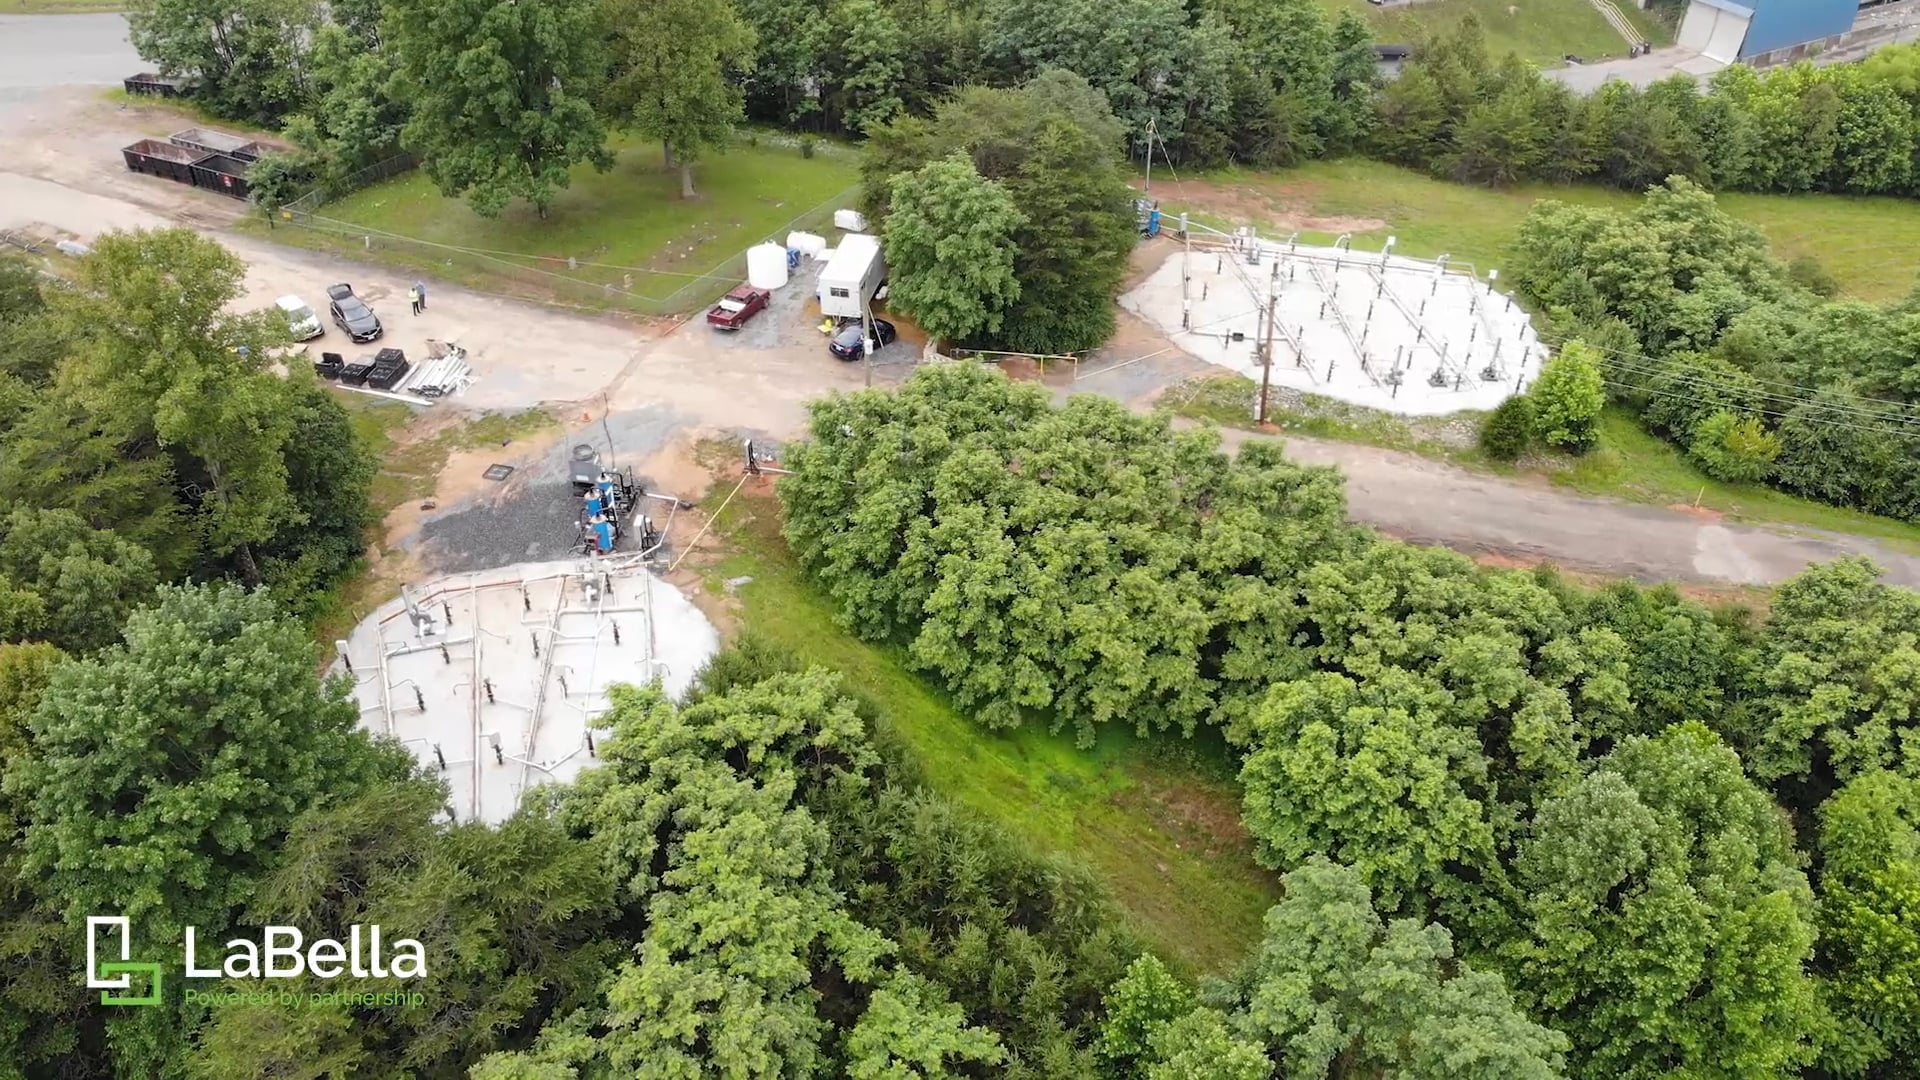 Case Study: In Situ Thermal Remediation at the Martinsville Landfill